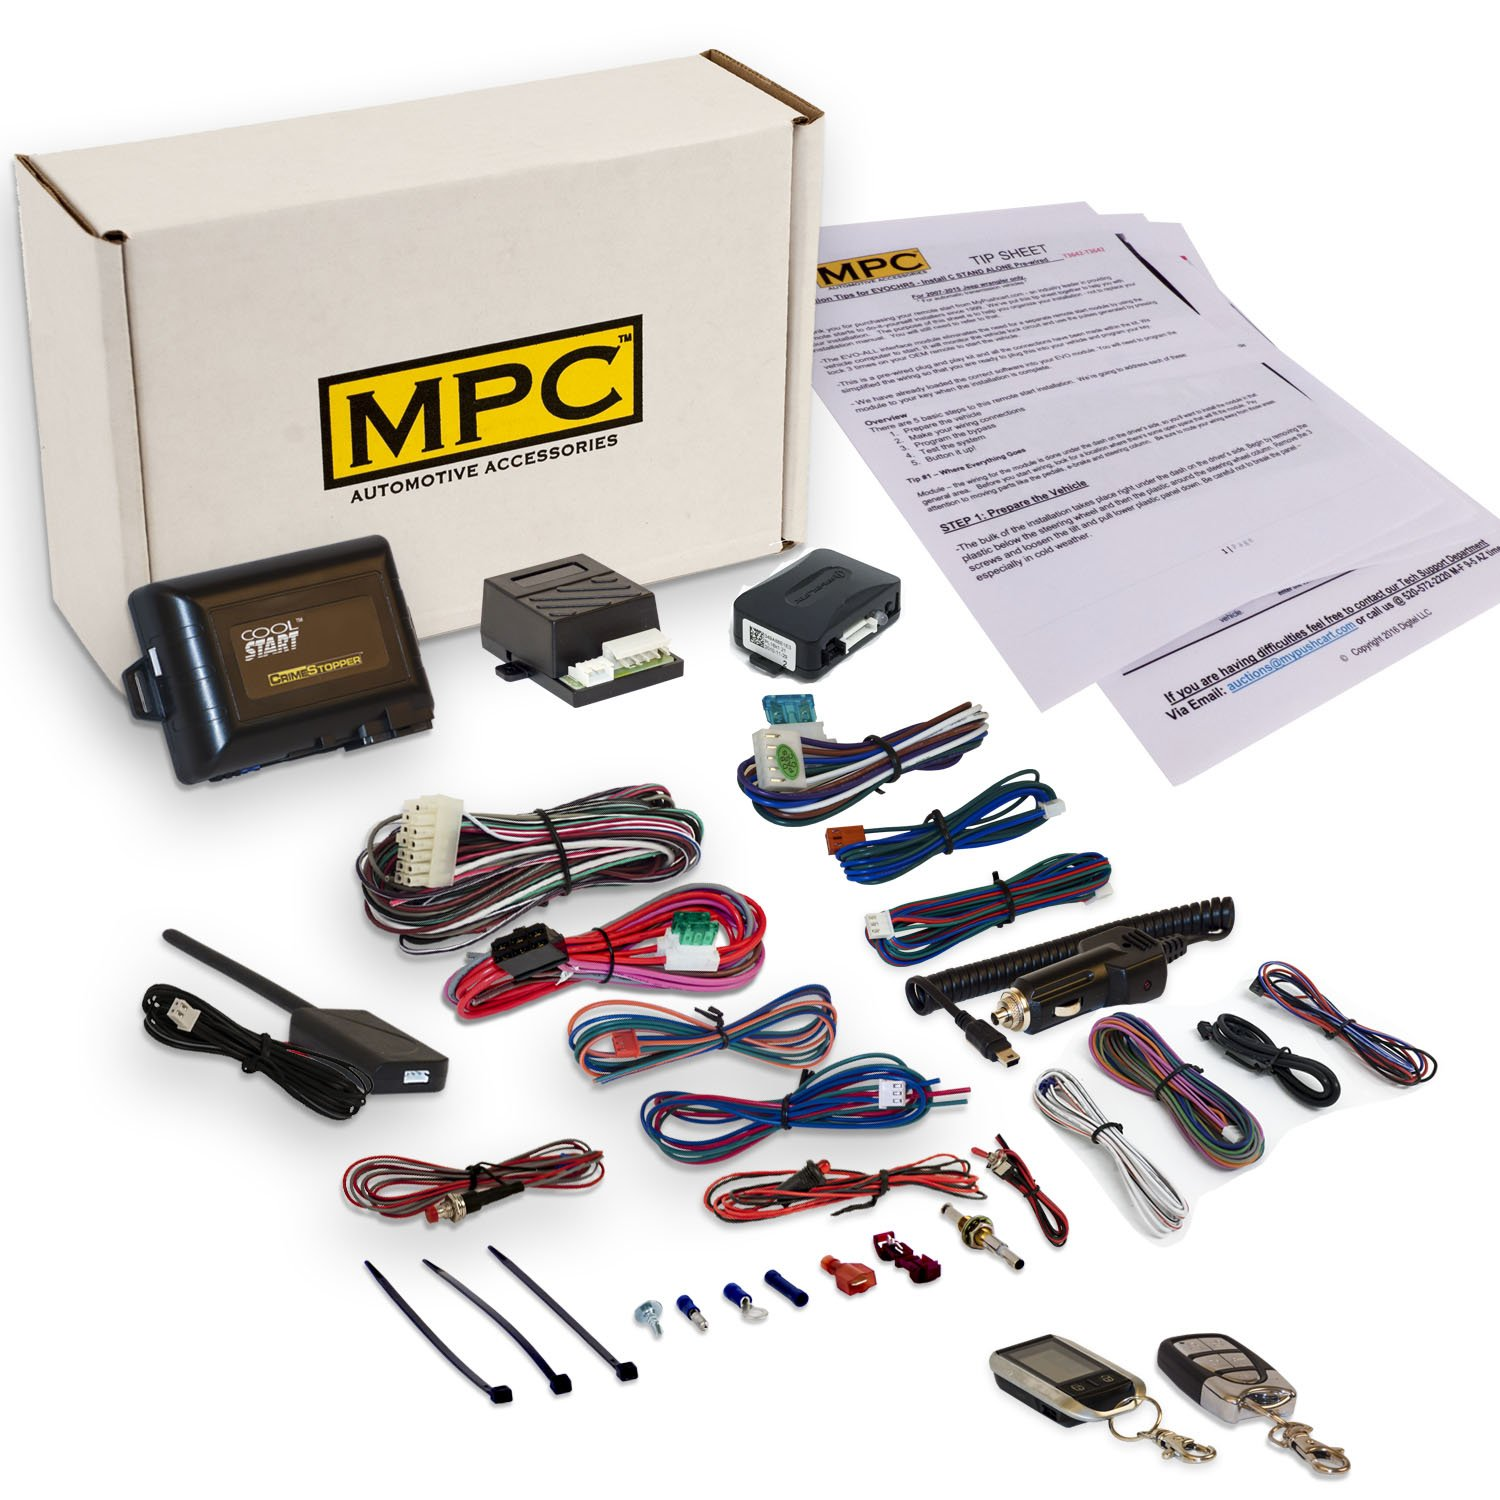 Complete 2 Way Remote Start Kit for Select Chevrolet Vehicles [1998-2005]. Includes Crimestopper RS7 Remote Starter, Bypass Module, & Installation Tip Sheet. Includes Everything You Need